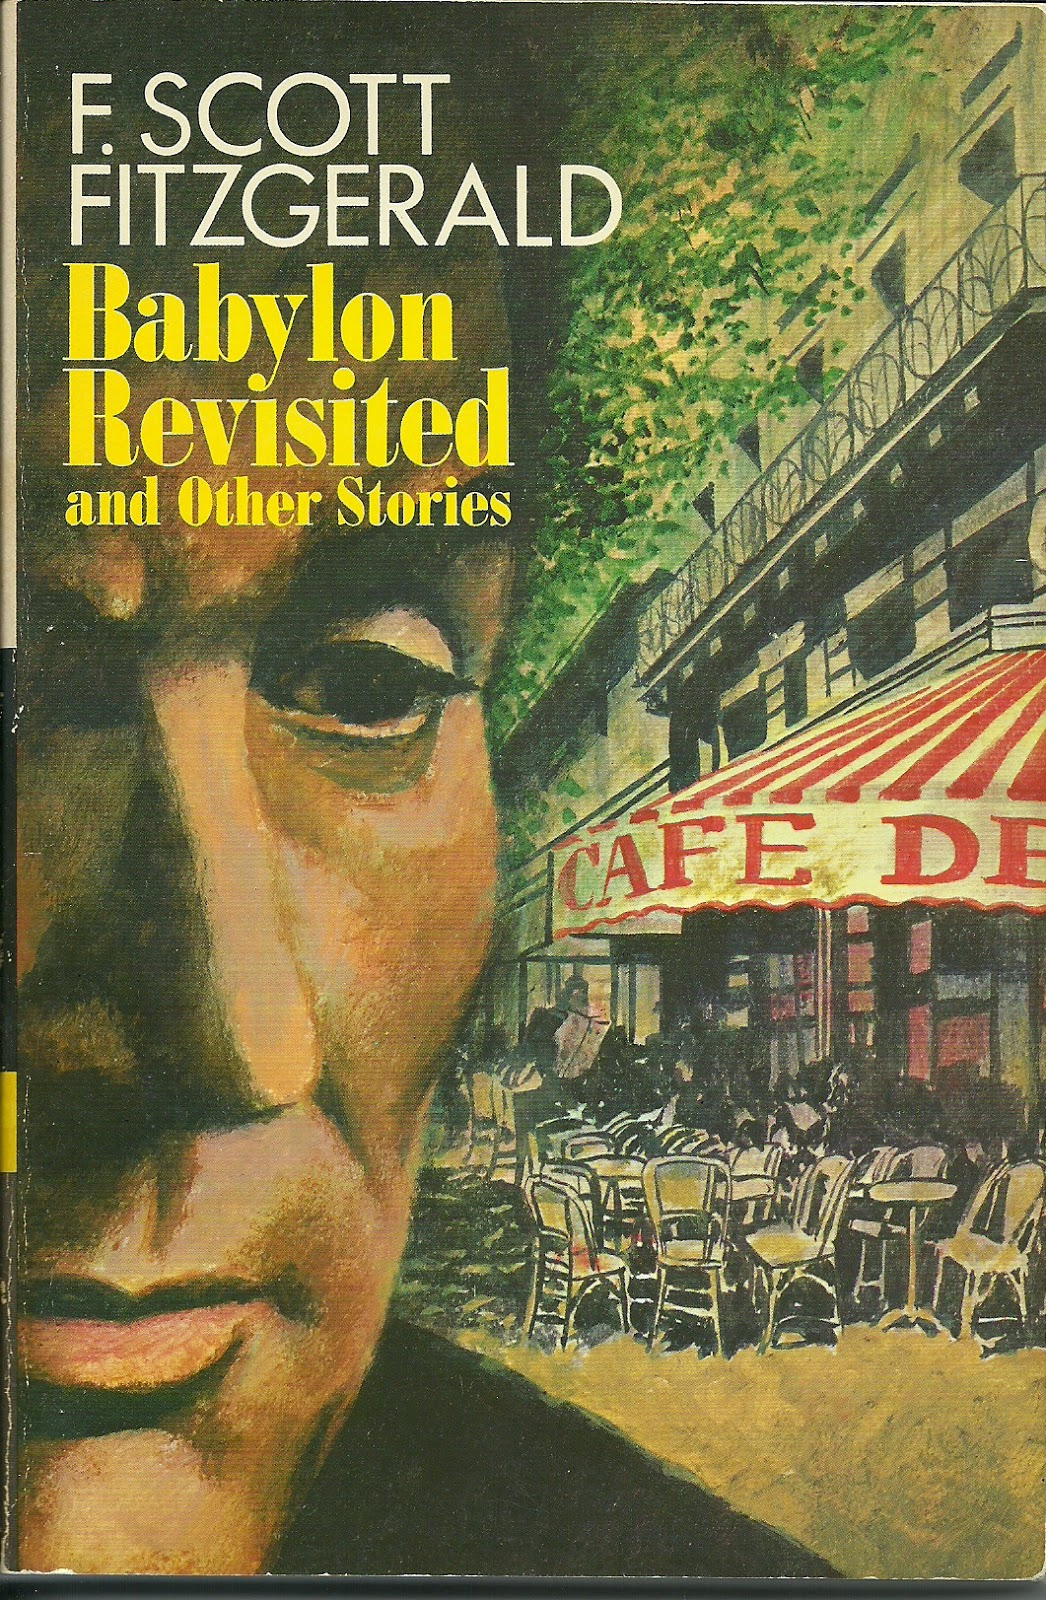 essays on babylon revisited Babylon revisited by f scott fitzgerald 2 pages 559 words june 2015 saved essays save your essays here so you can locate them quickly.